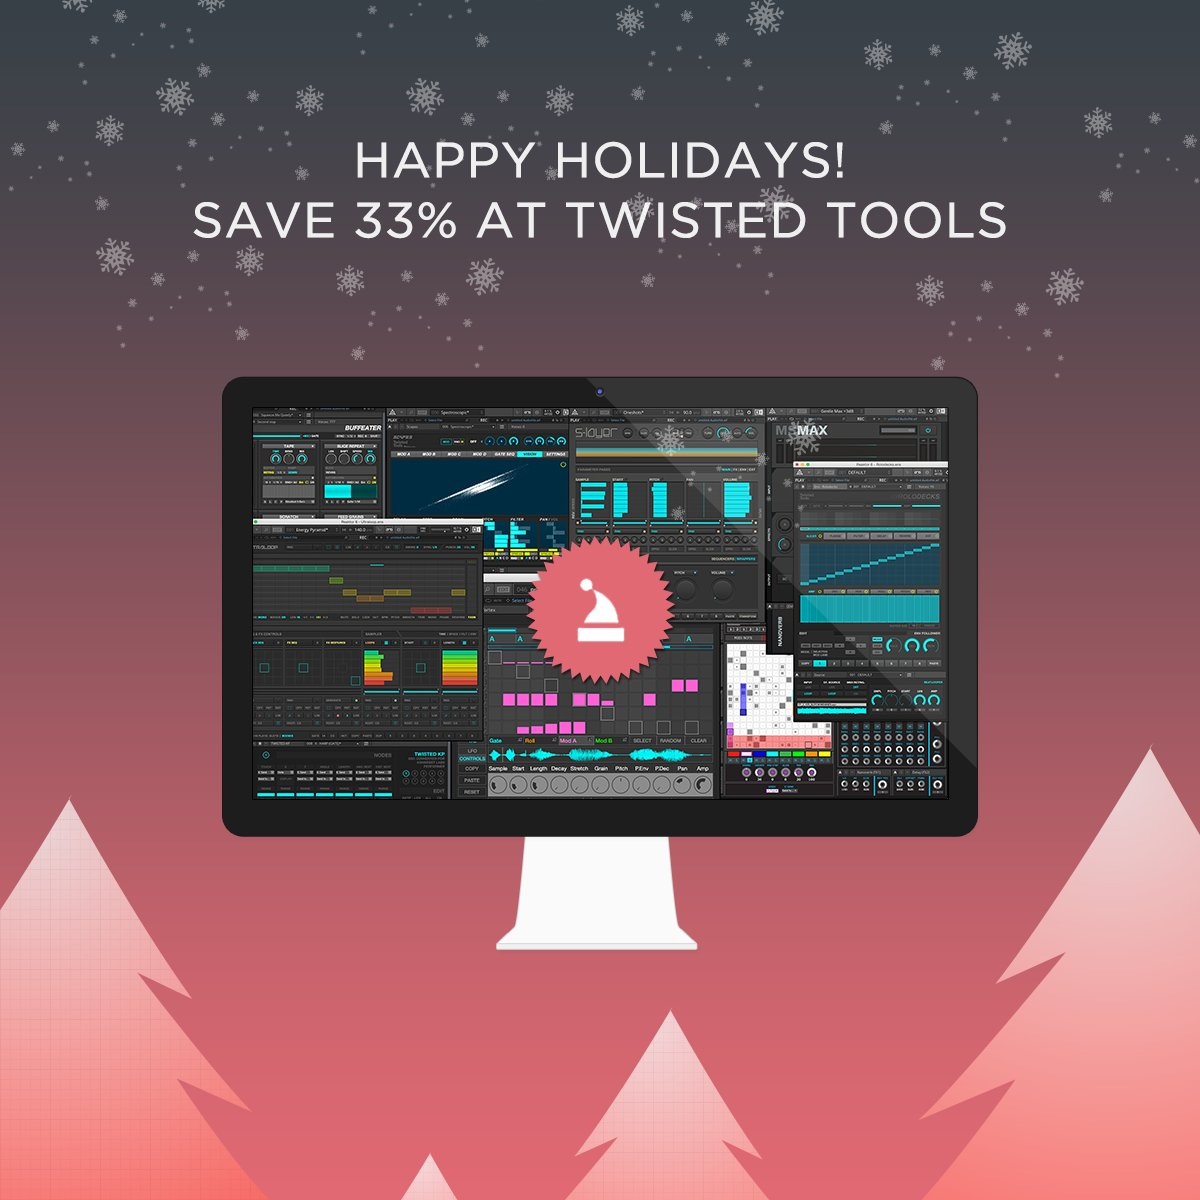 HOLIDAY SALE - Save 33% off all items at Twisted Tools. twistedtools.com